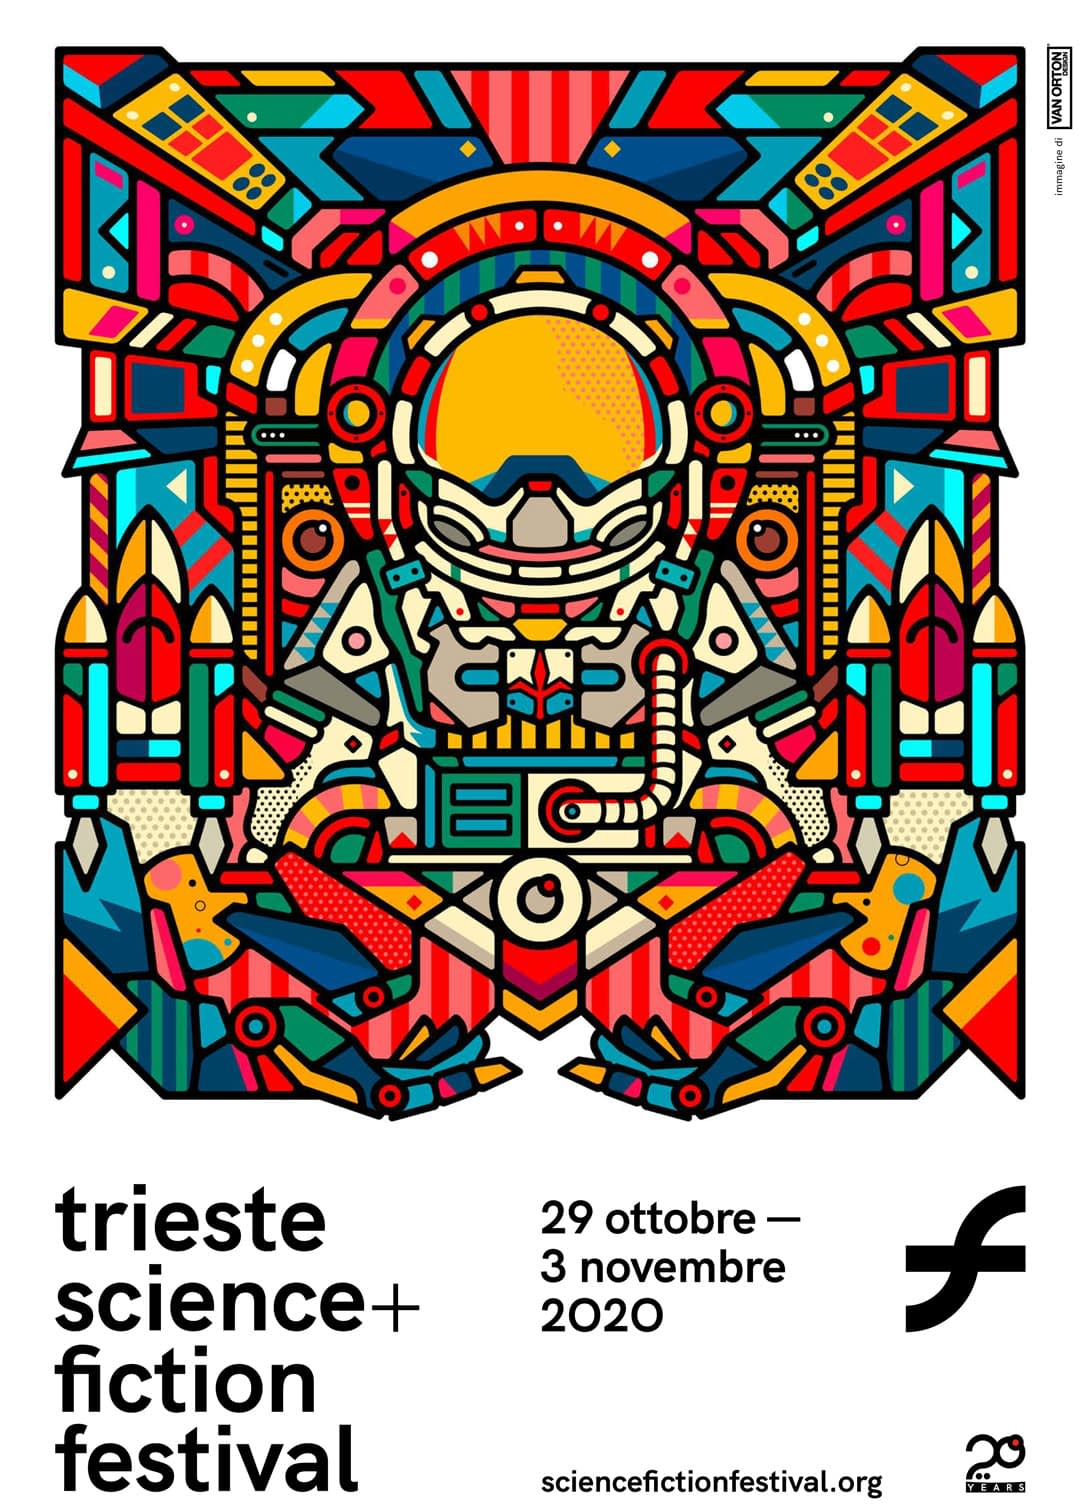 TS+FF20-Trieste-Science+Fiction-Poster-2020-by-Van-Orton-WEB